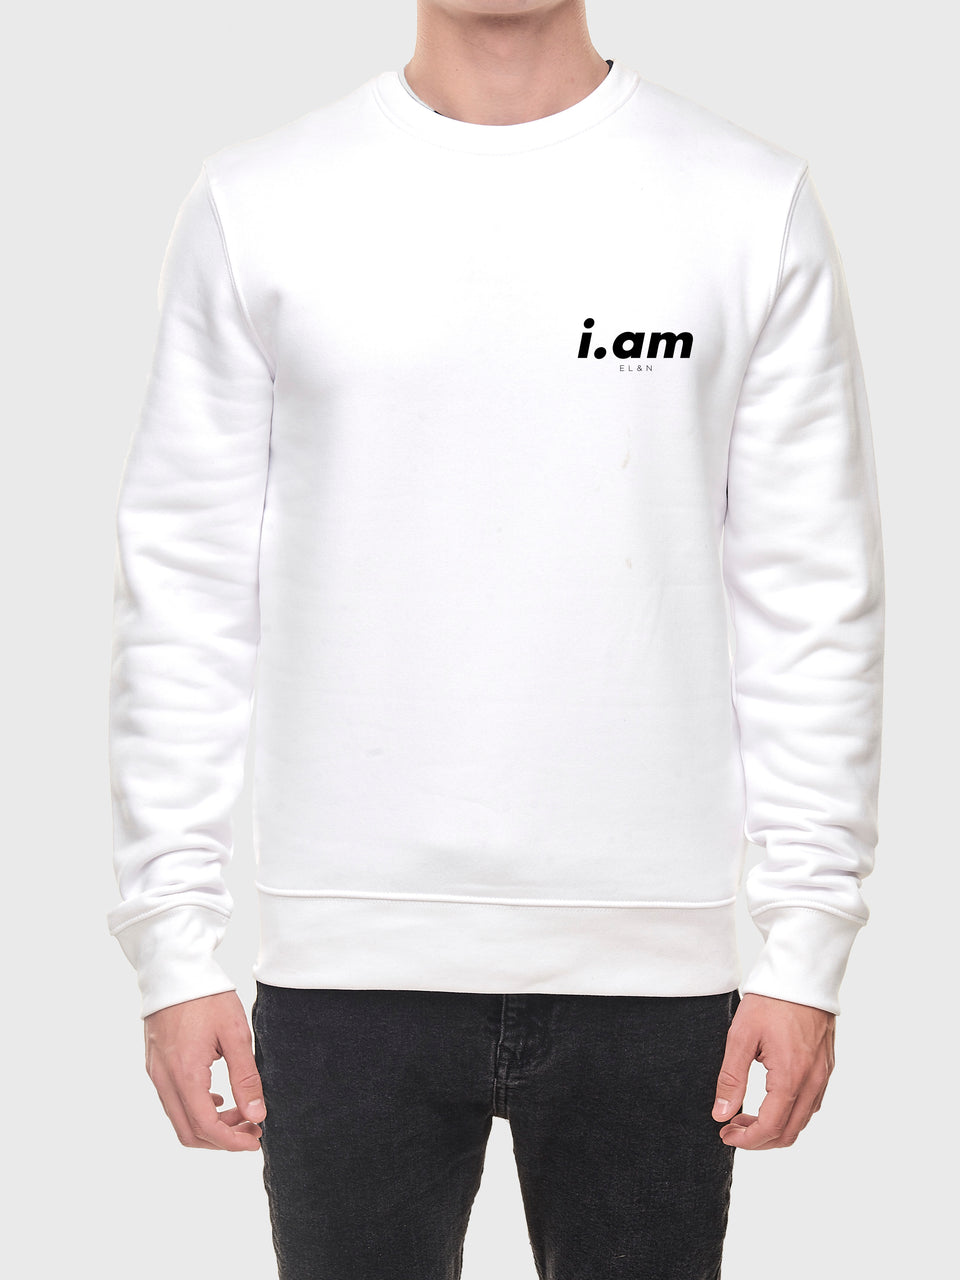 Making It - White - Unisex sweatshirt